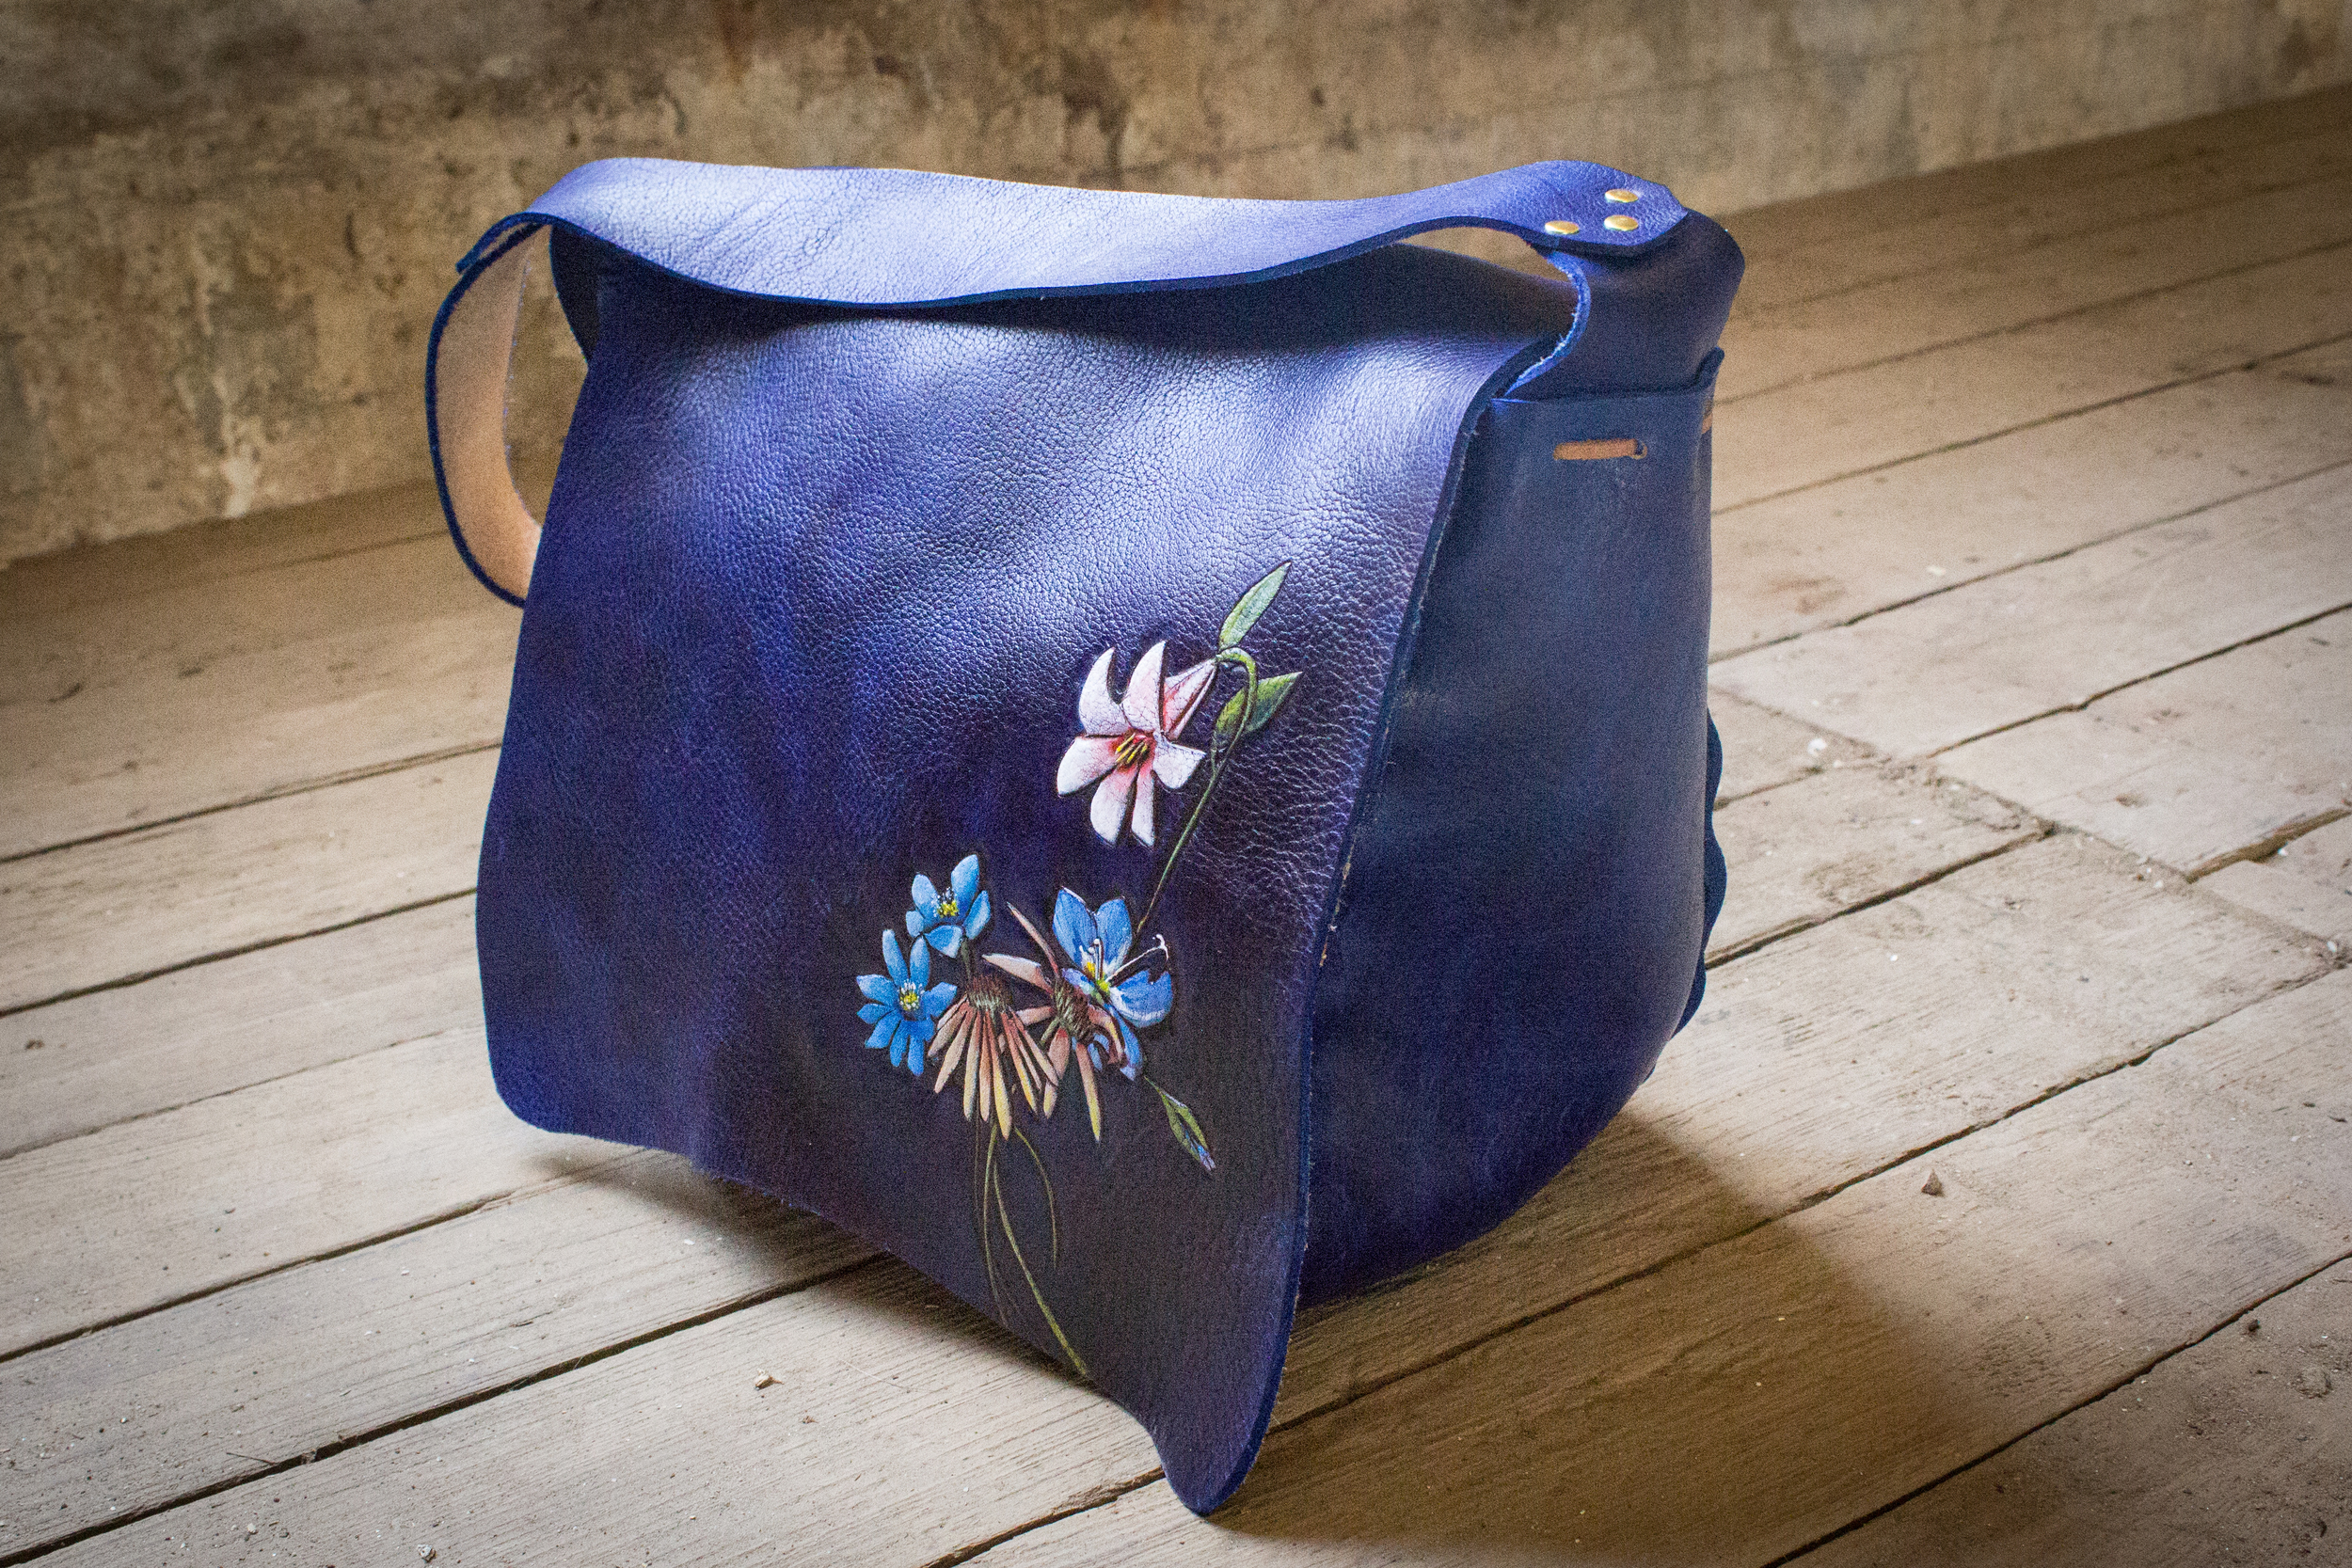 Blue Leather Tote Bag with flowers